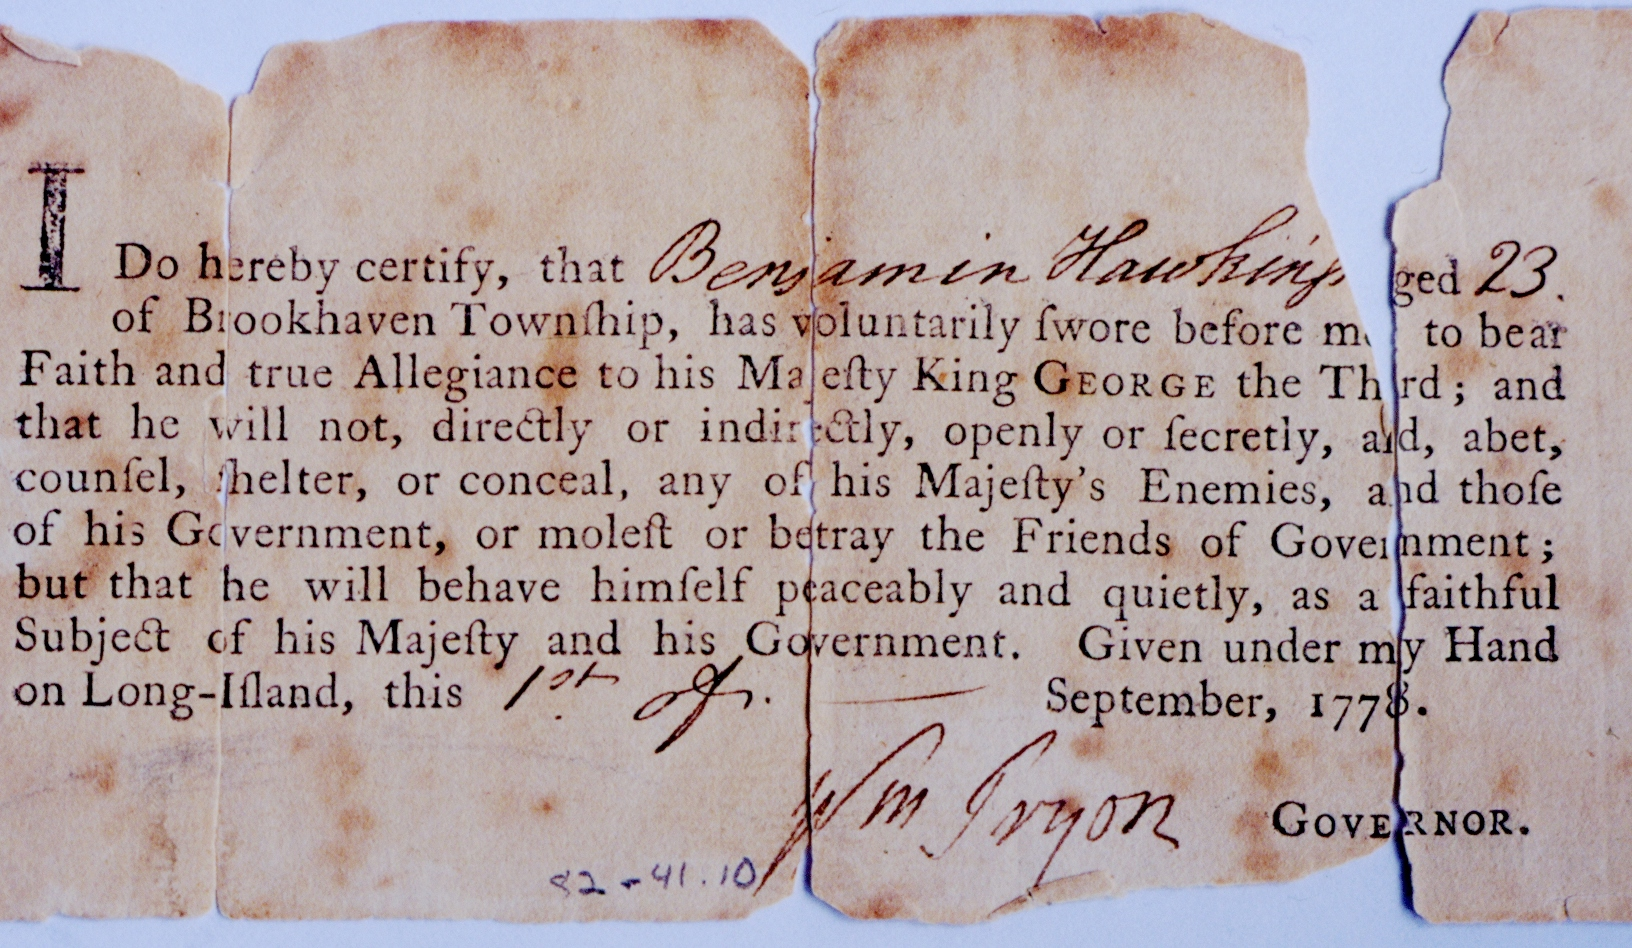 A 1778 document in the Three Village Historical Society collection that every man who stayed on Long Island after the British took control was required to sign to swear allegiance to the king.